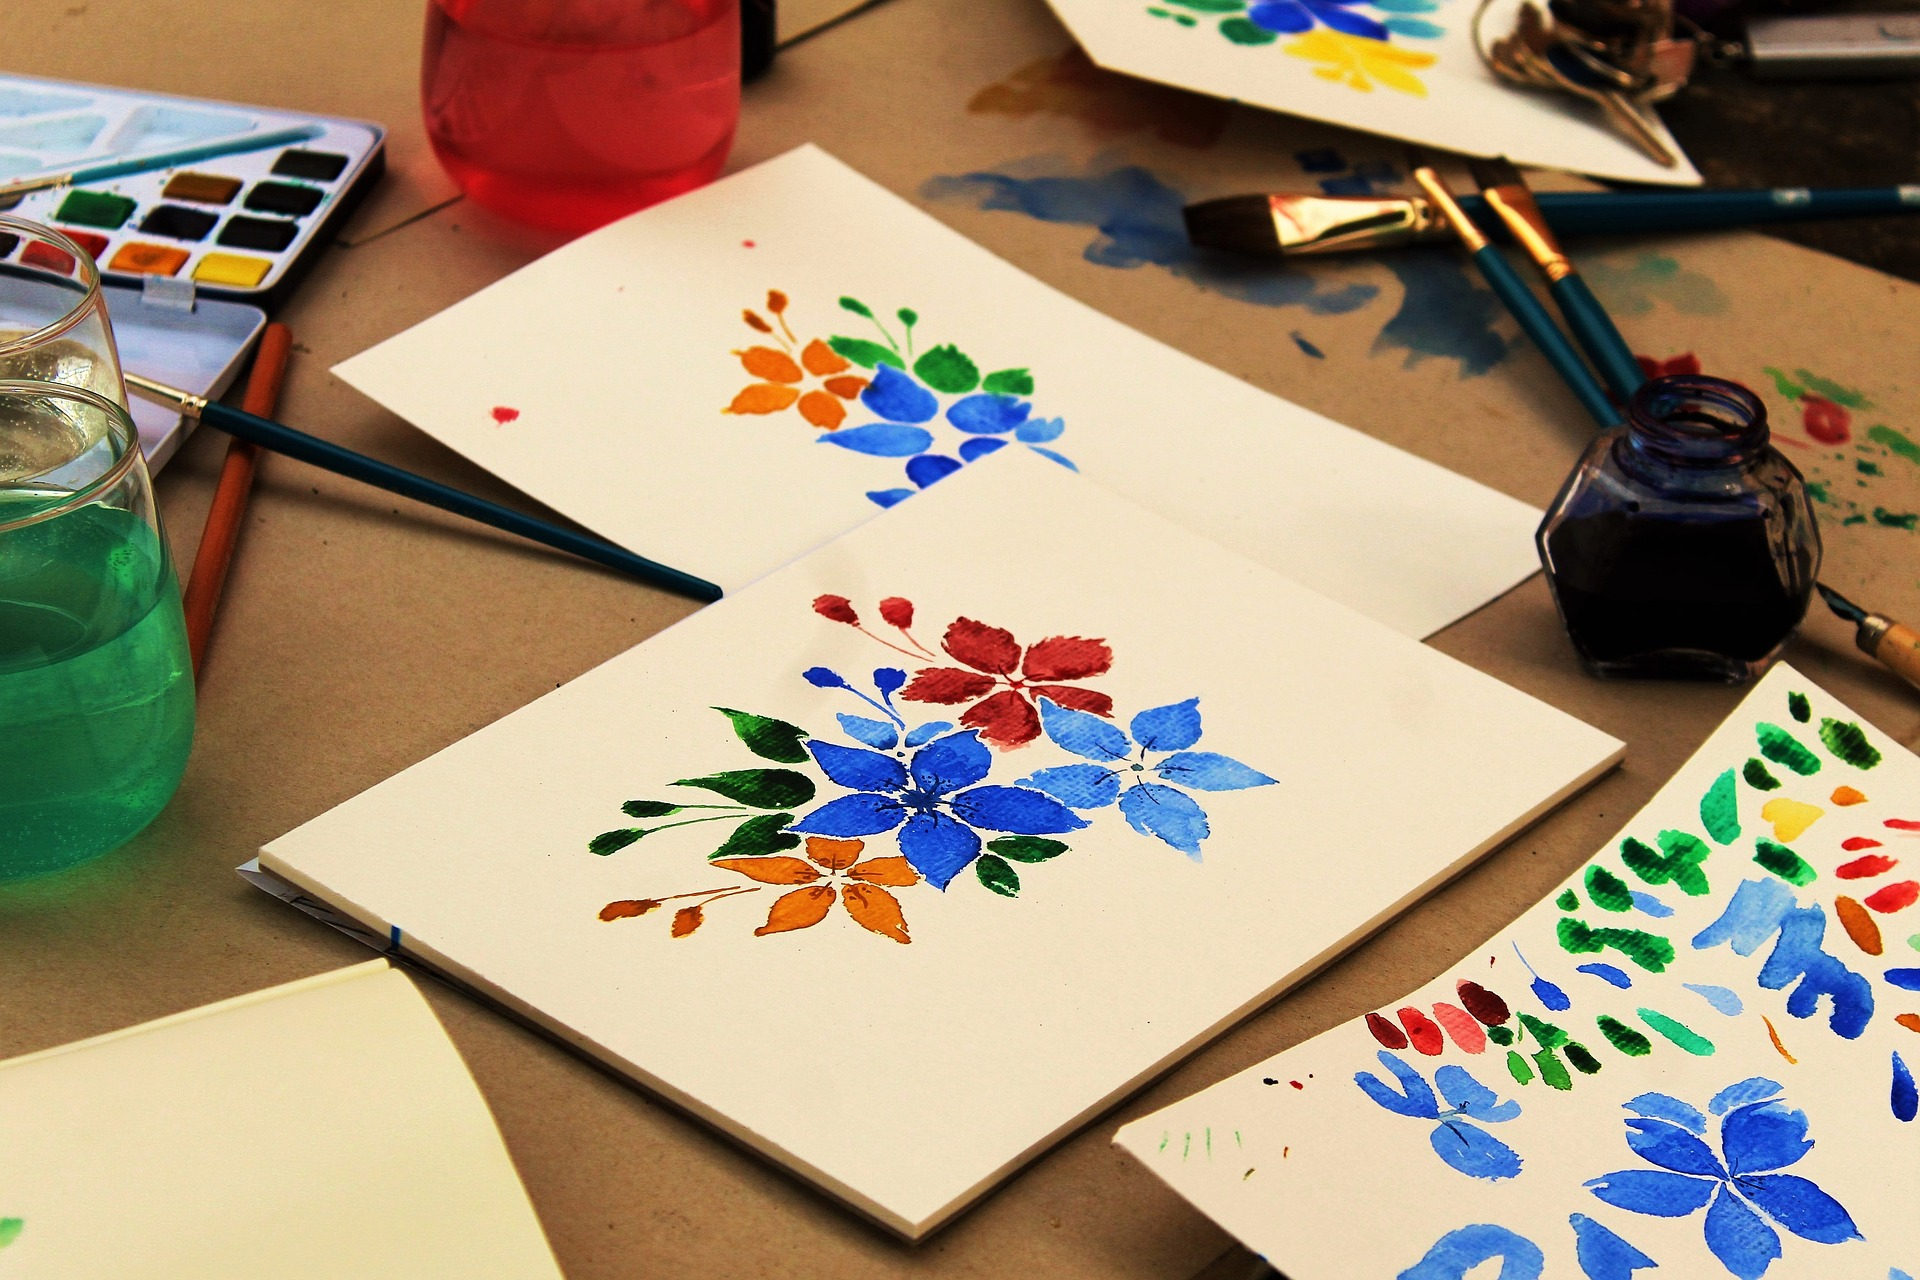 5 Life Skills Learned from Art Class for Children